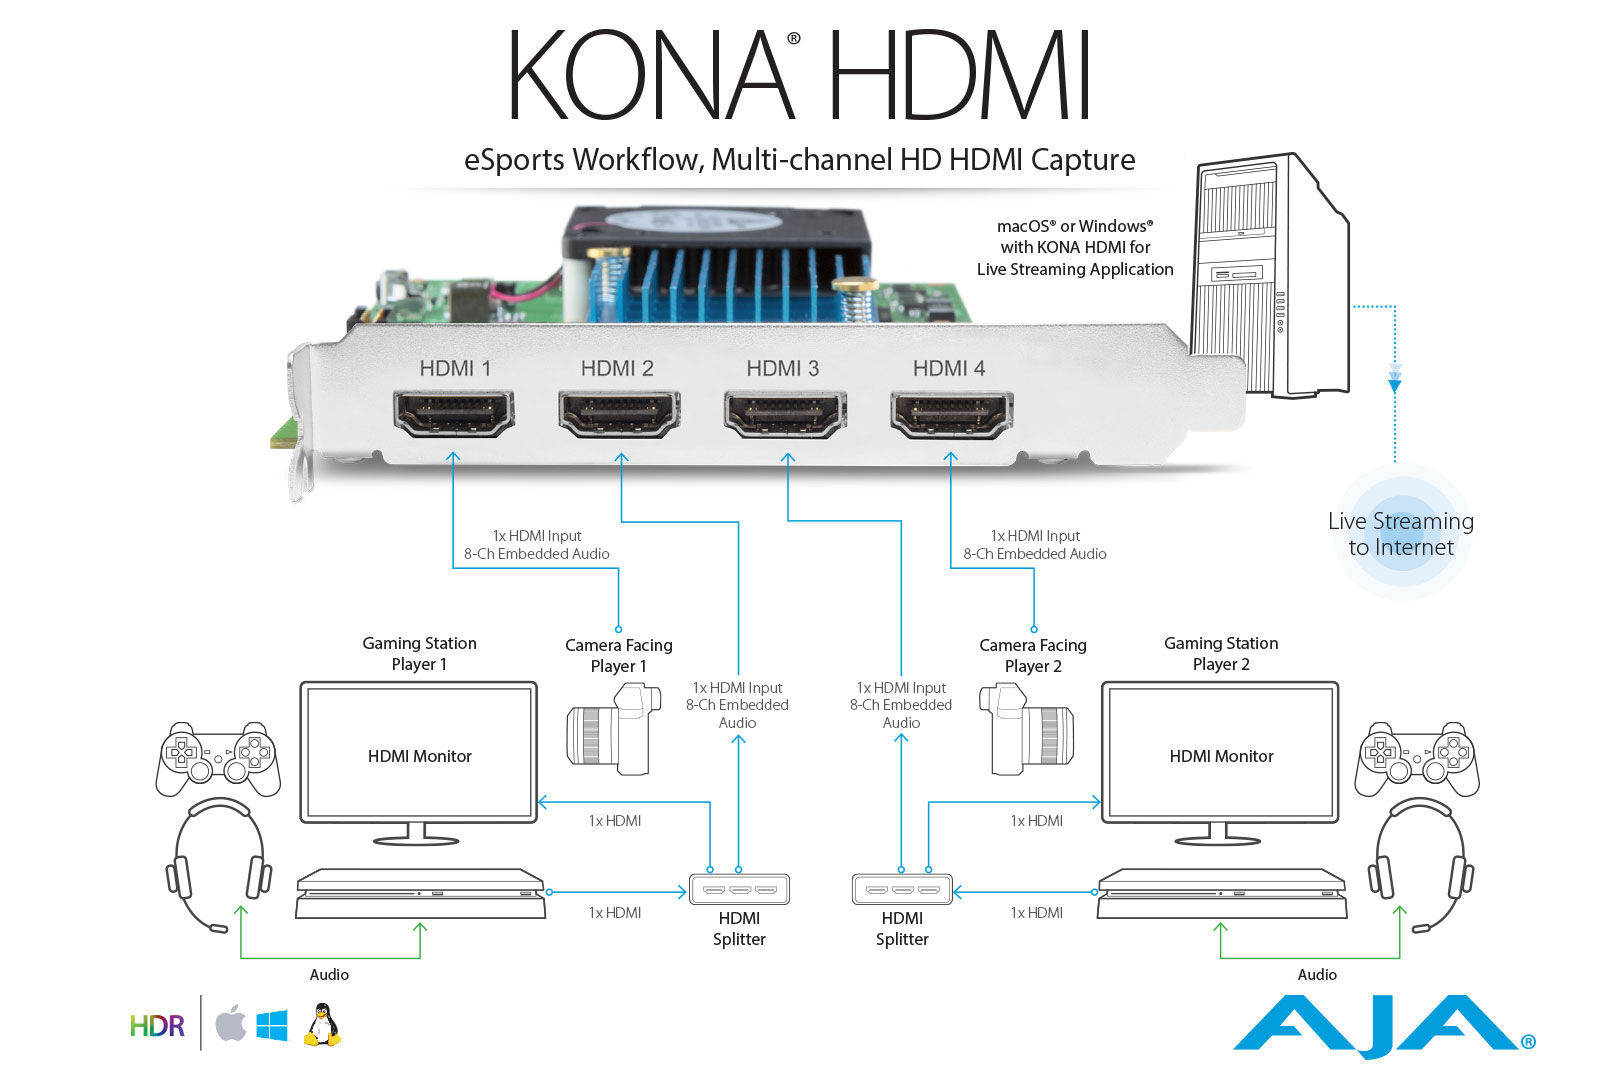 KONA HDMI - HDMI Capture for Multi-Channel HD or Single